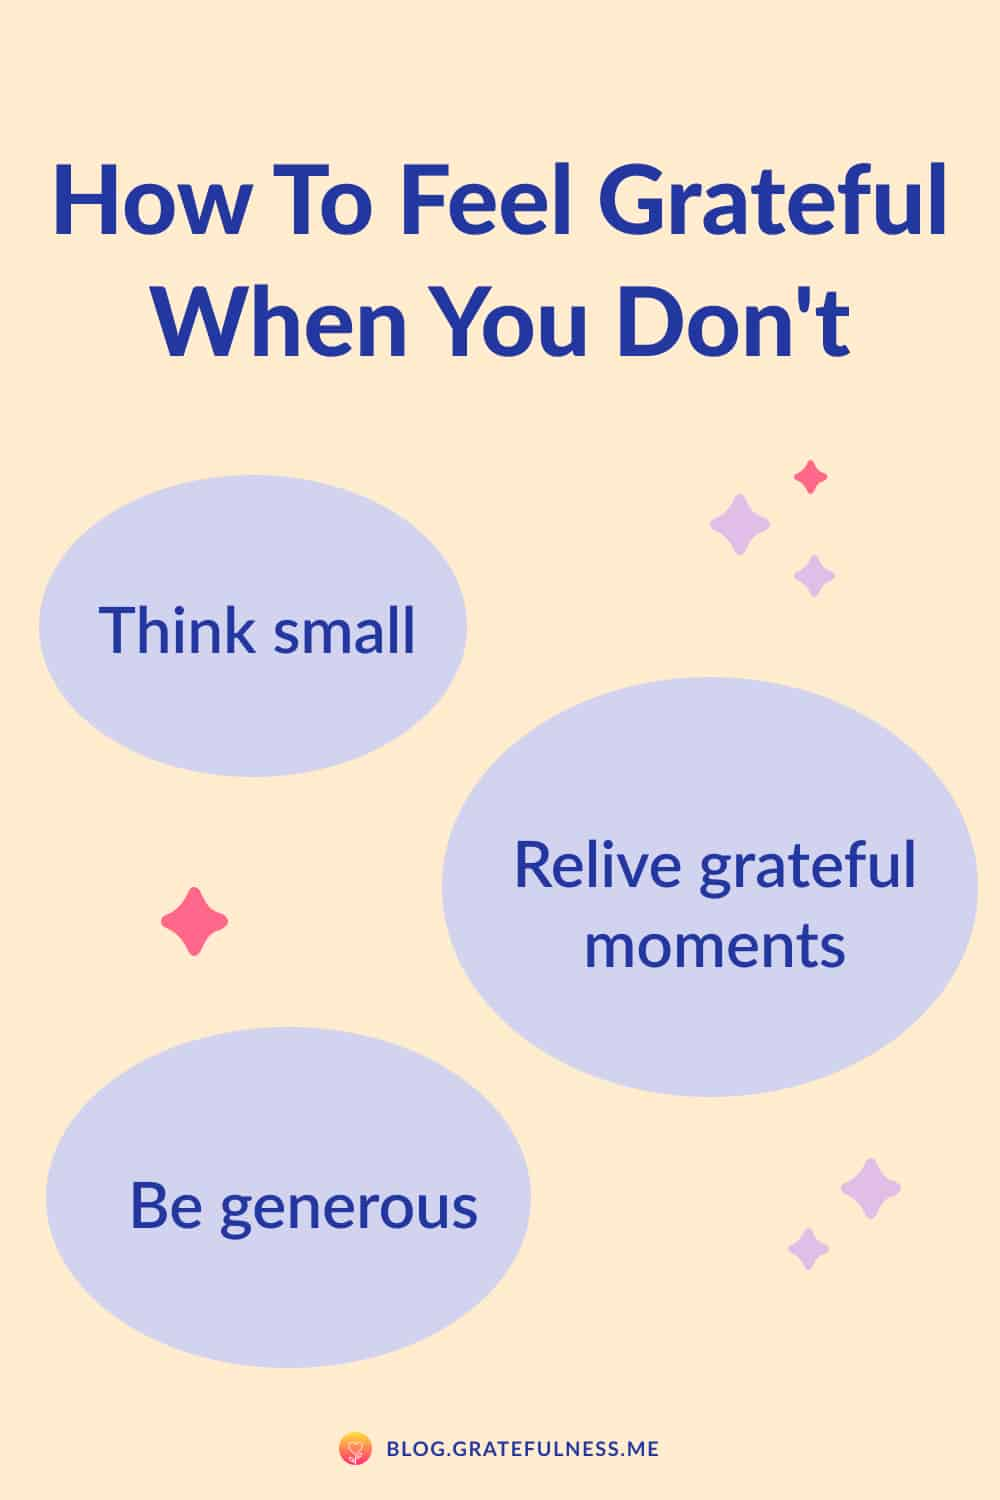 Image with the 3 steps to feel grateful when you don't